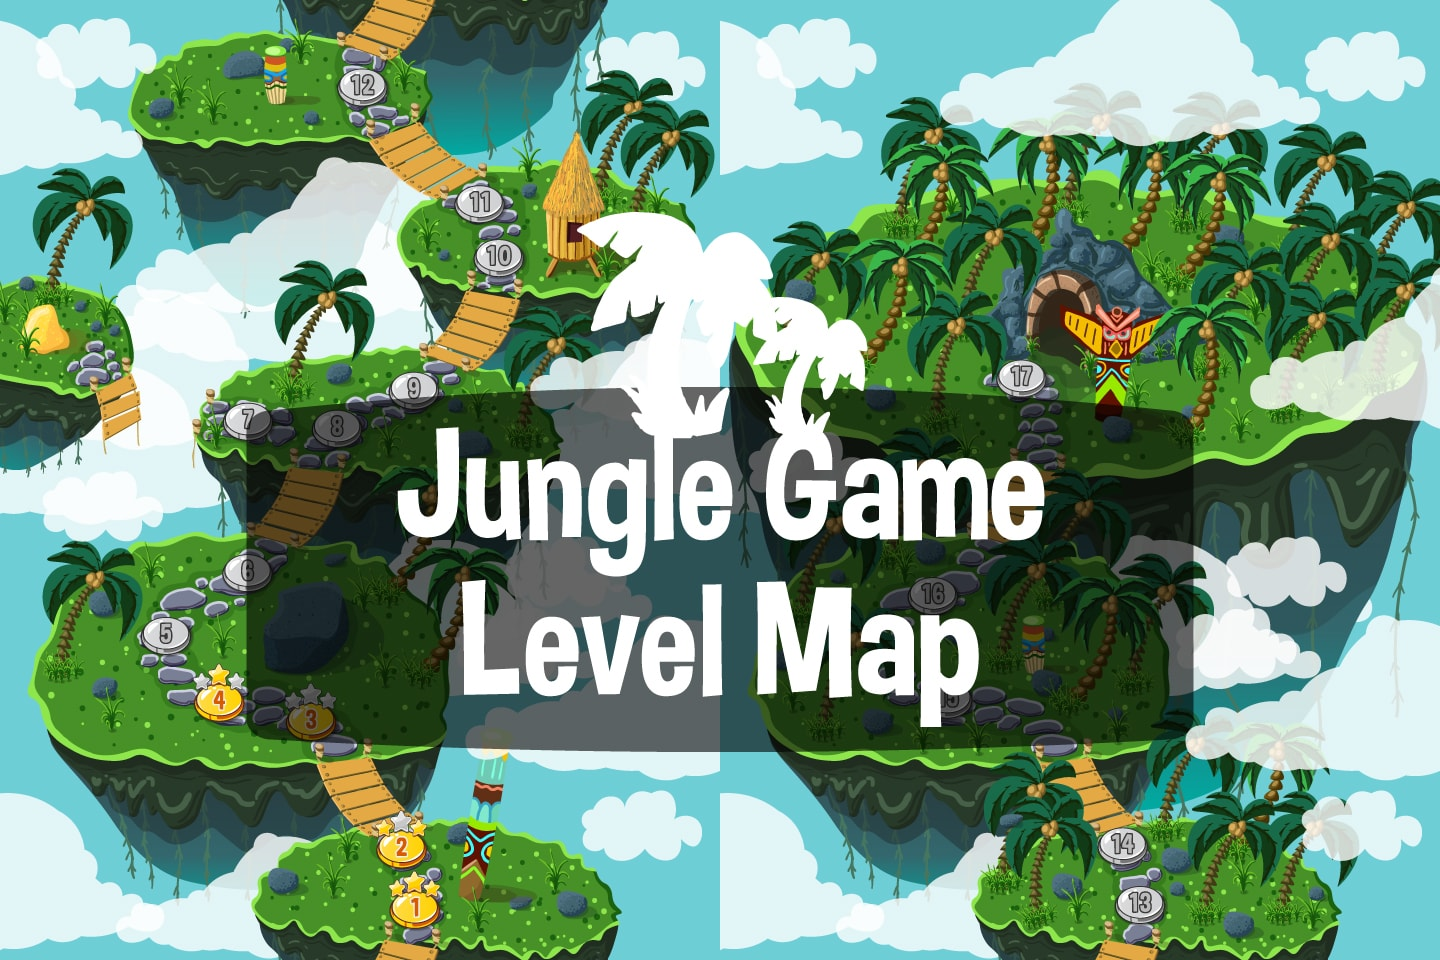 Jungle Game Level Map Backgrounds